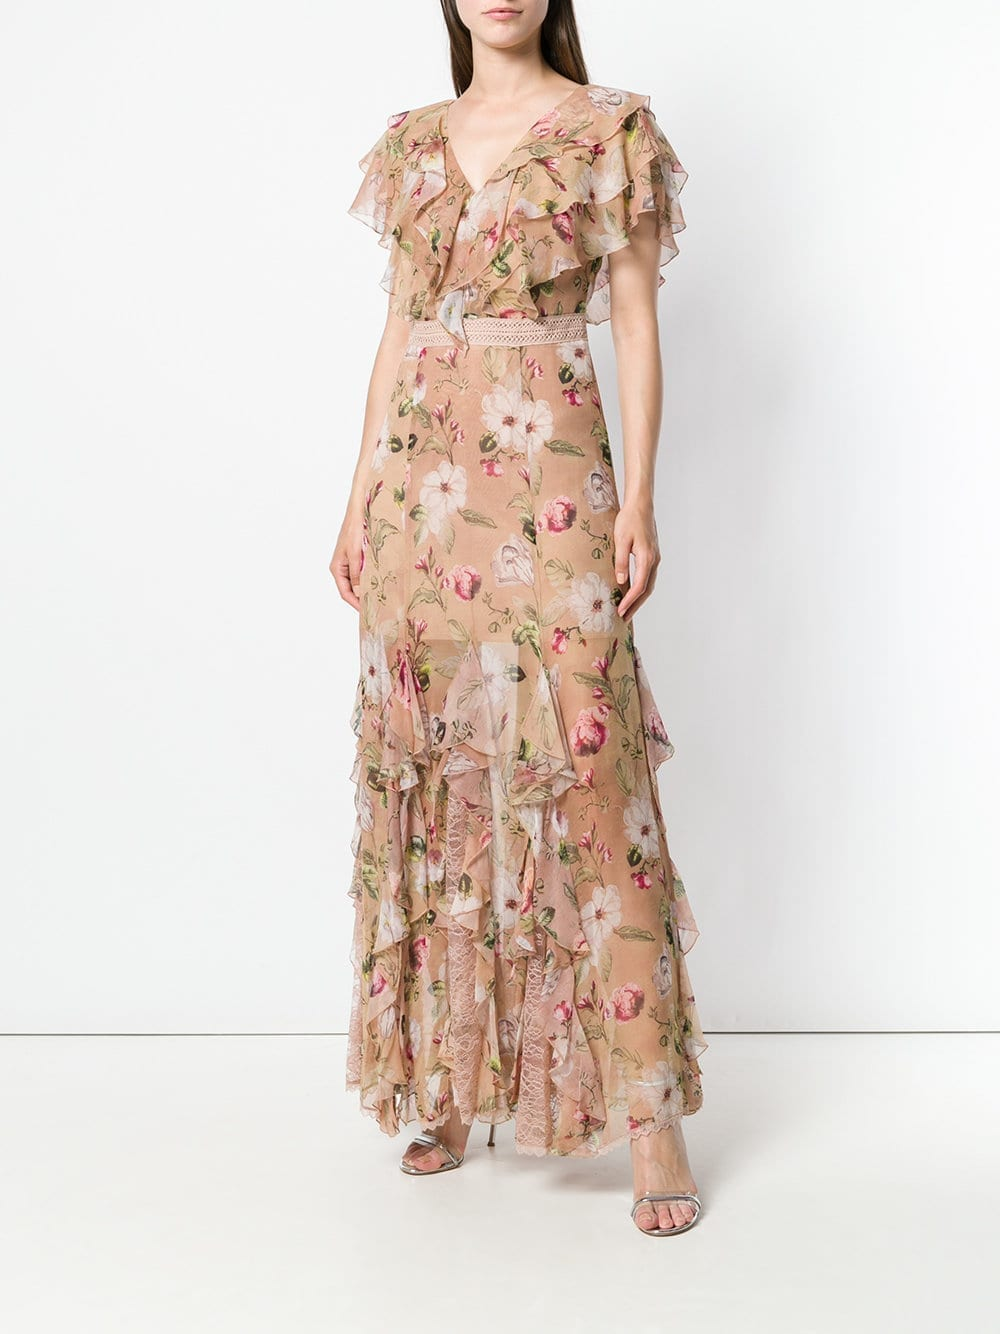 ALICE+OLIVIA Multi / Floral Printed Gown